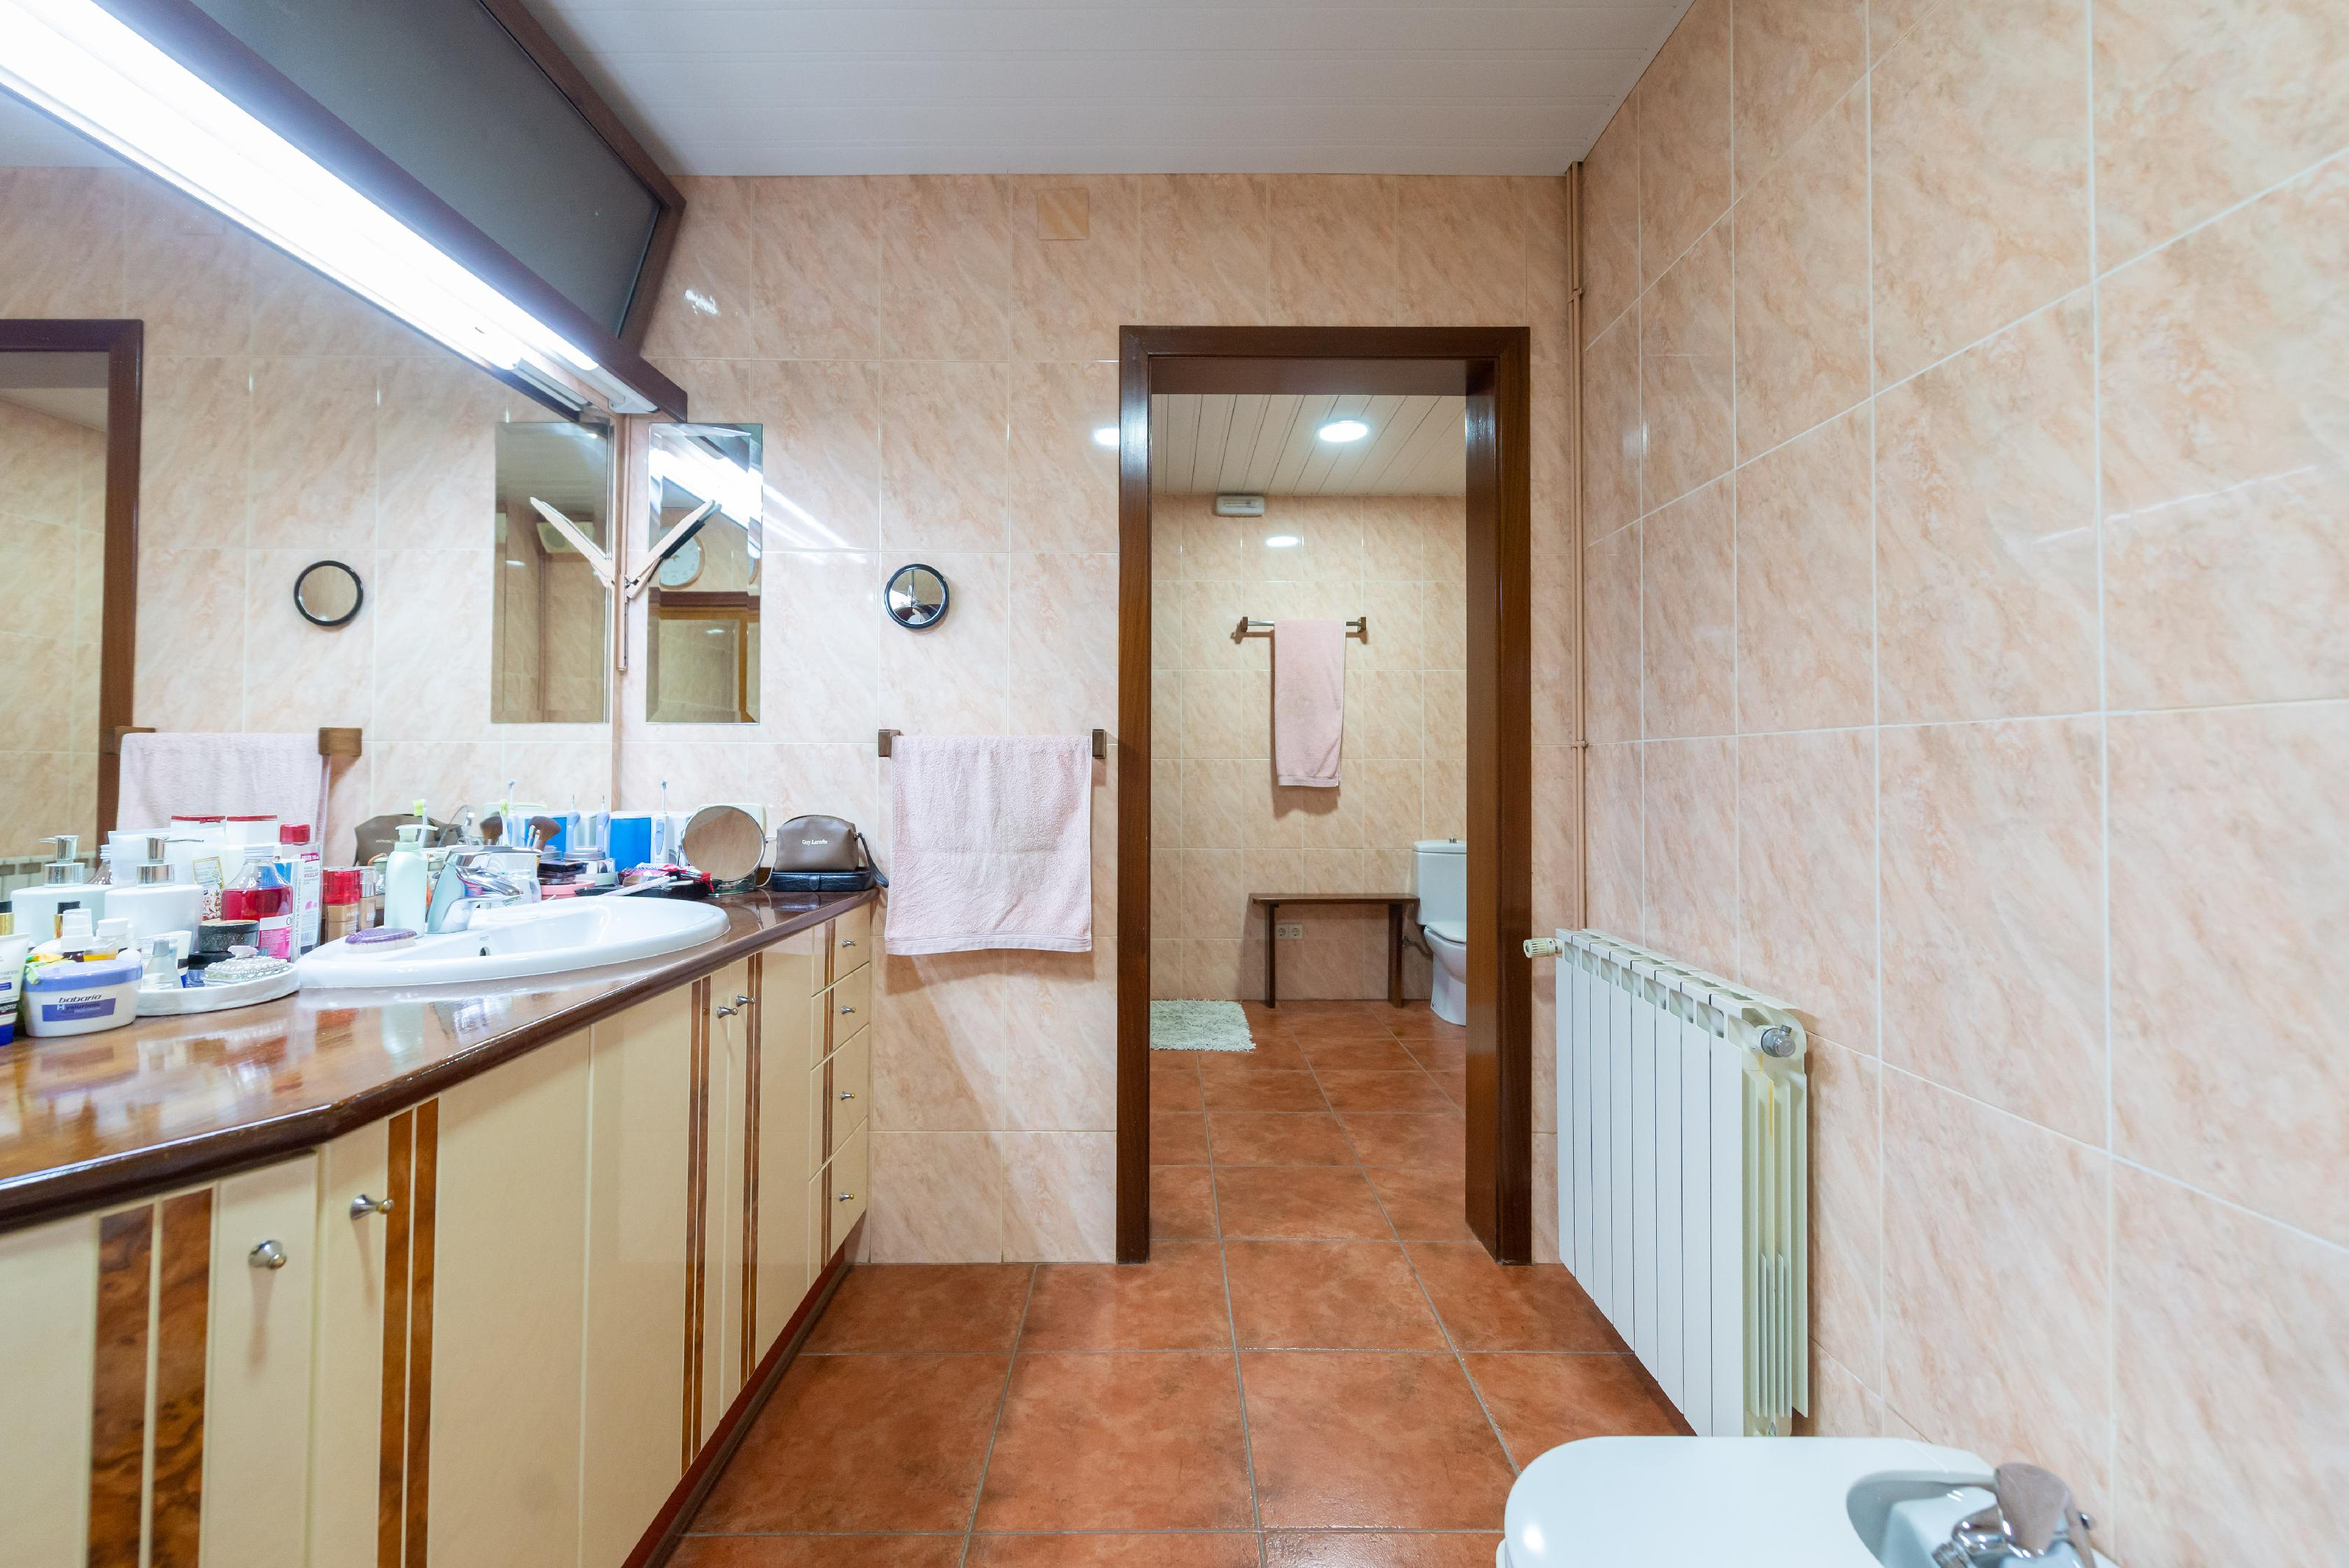 253501 Detached House for sale in Bellamar 16